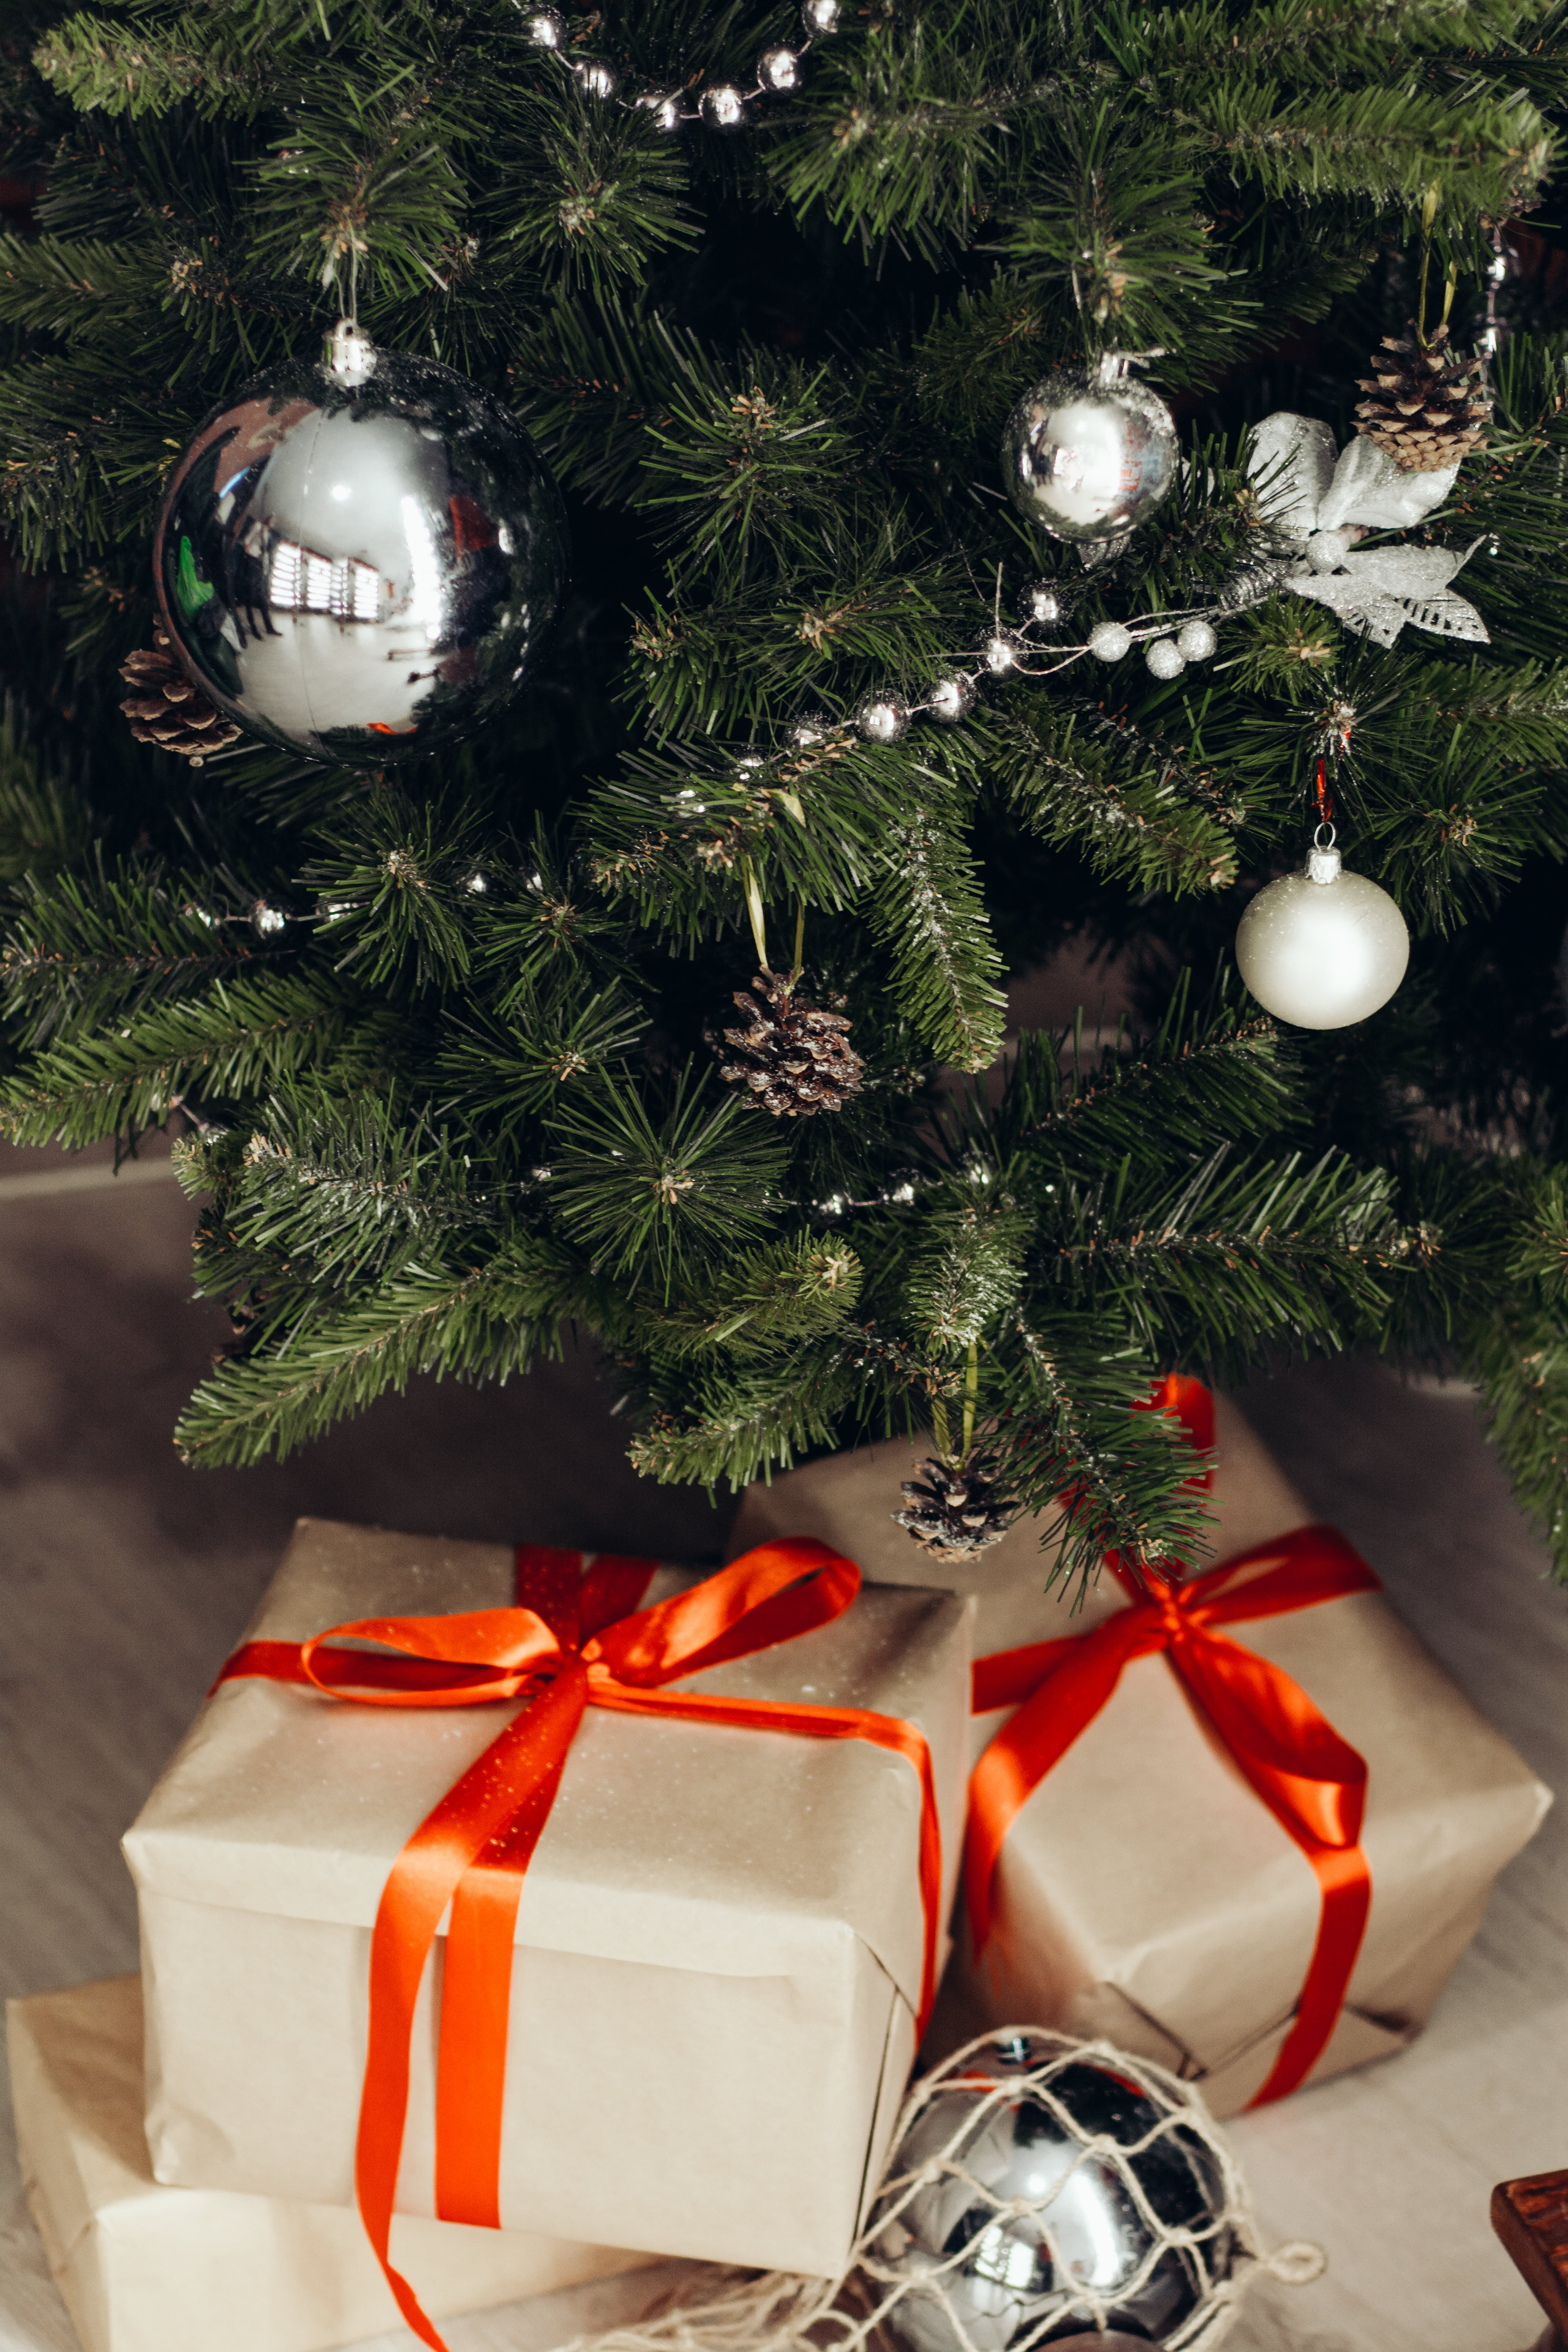 Photo of Gifts Under Christmas Tree